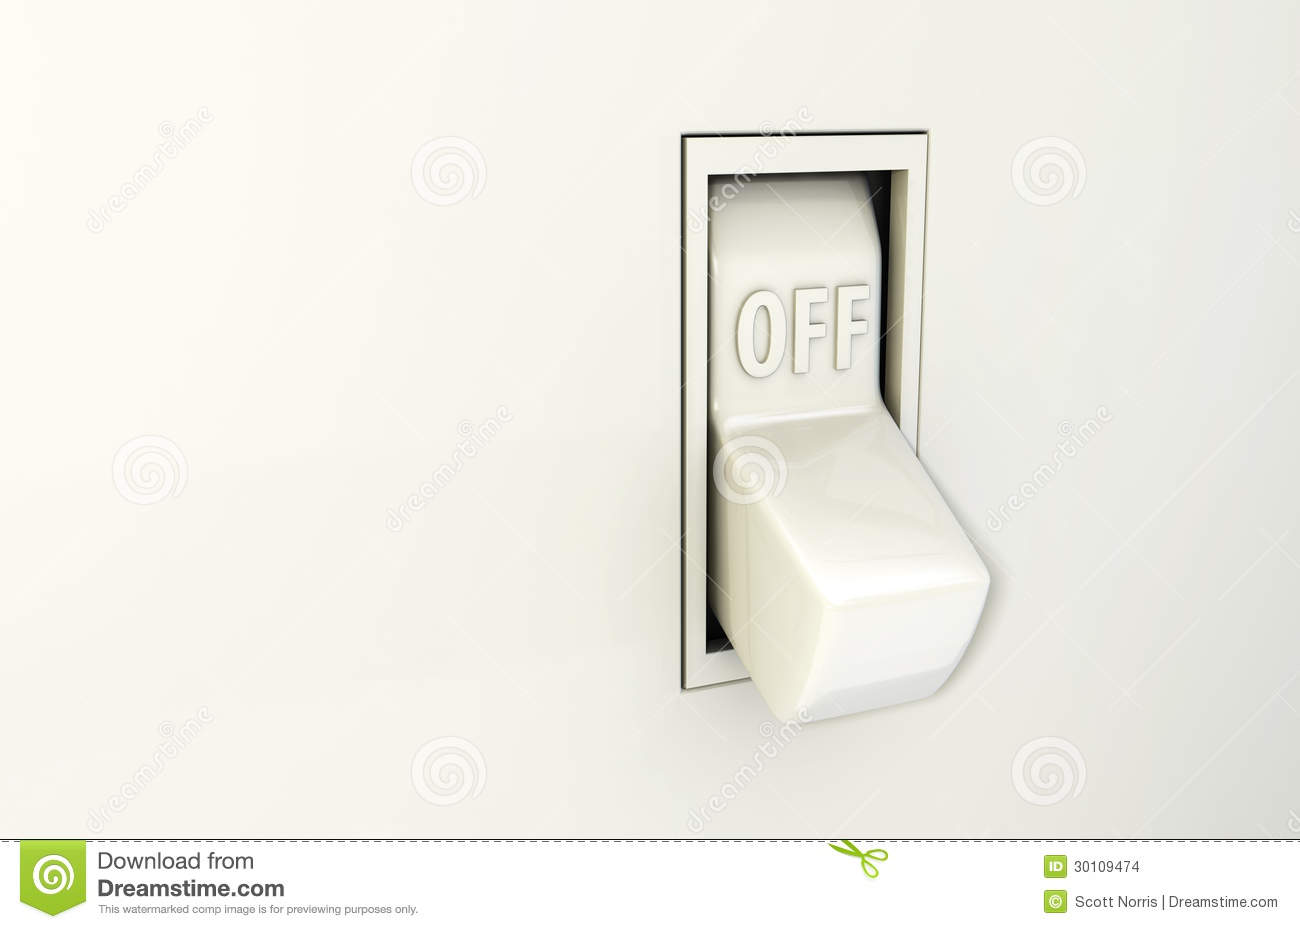 Wall Switch Off stock illustration. Illustration of power - 30109474